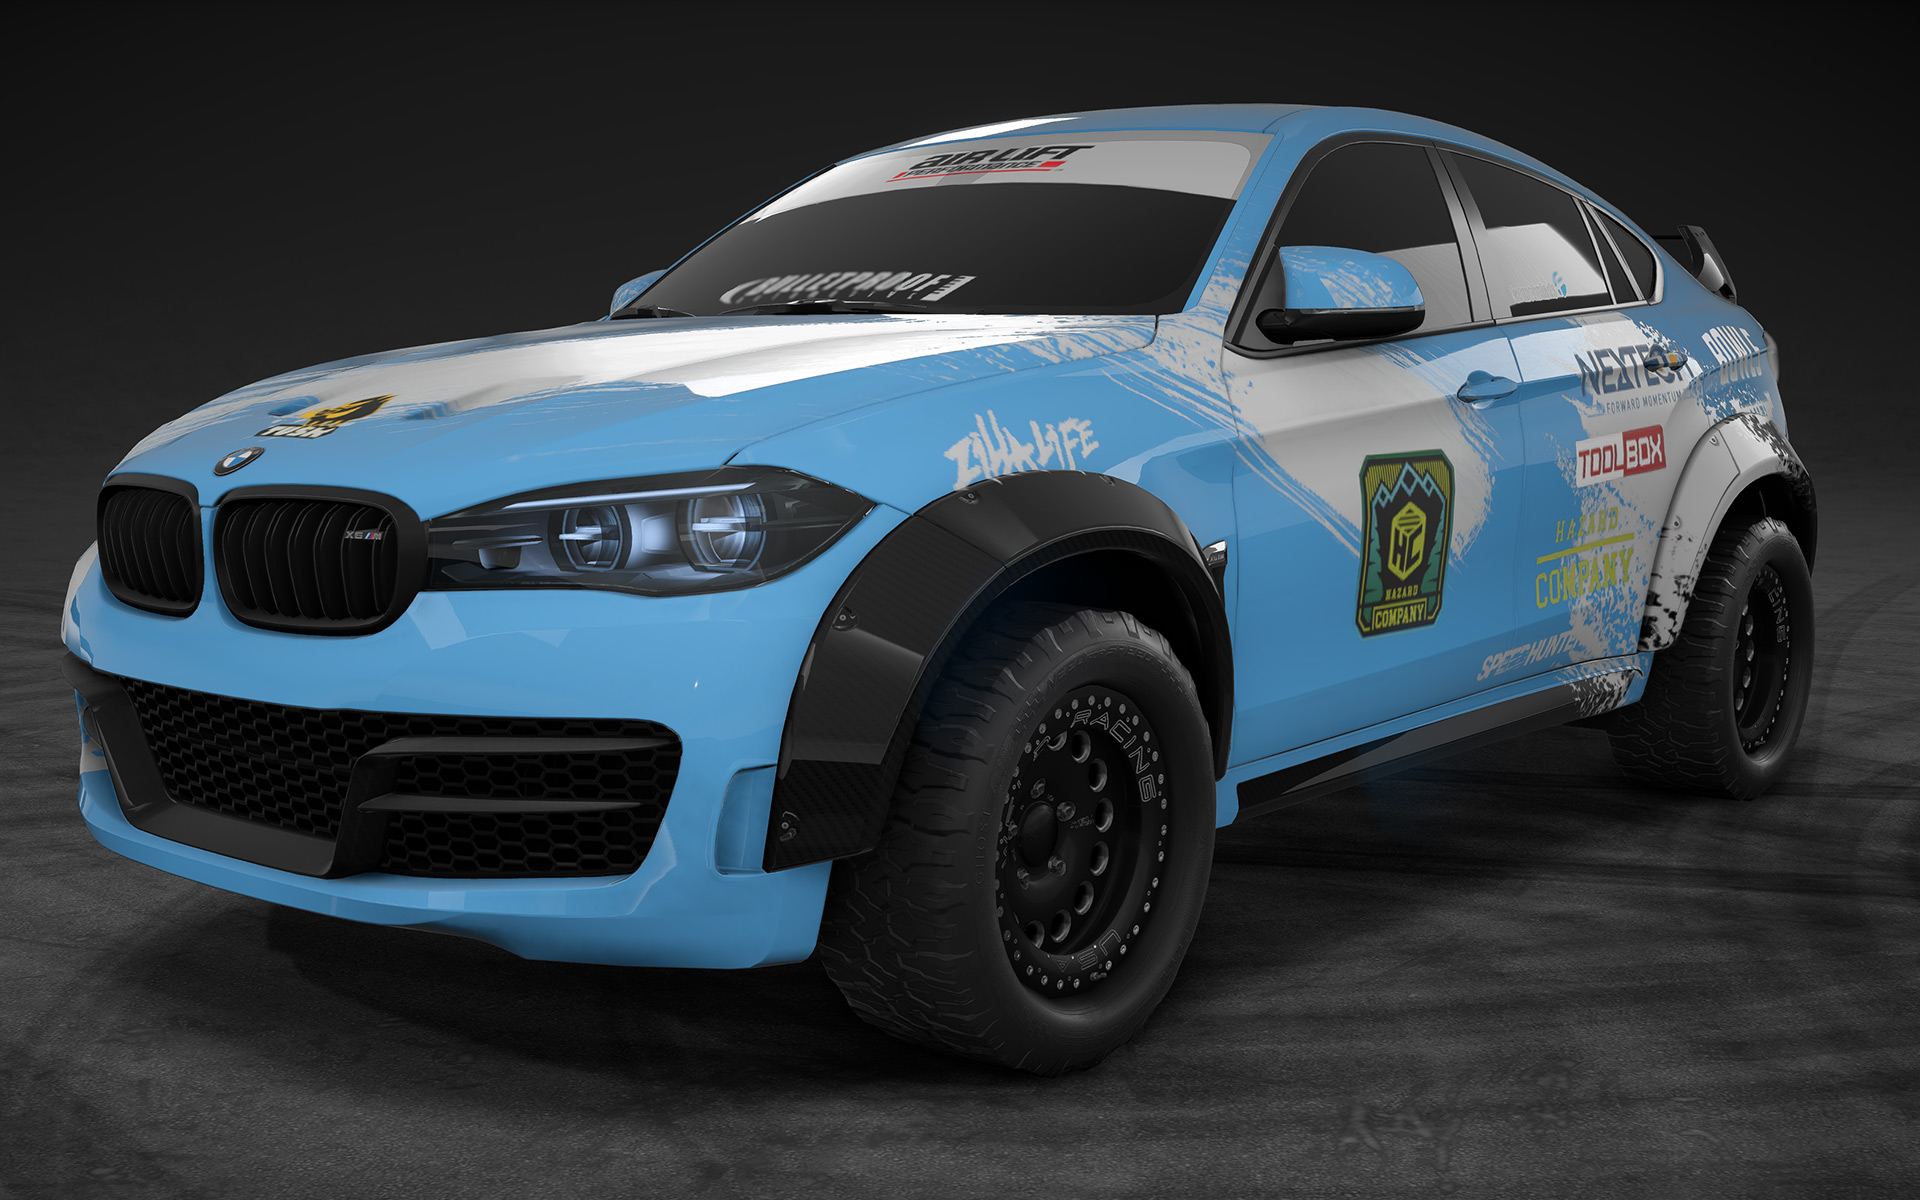 BMW X6 M in Need for Speed Payback